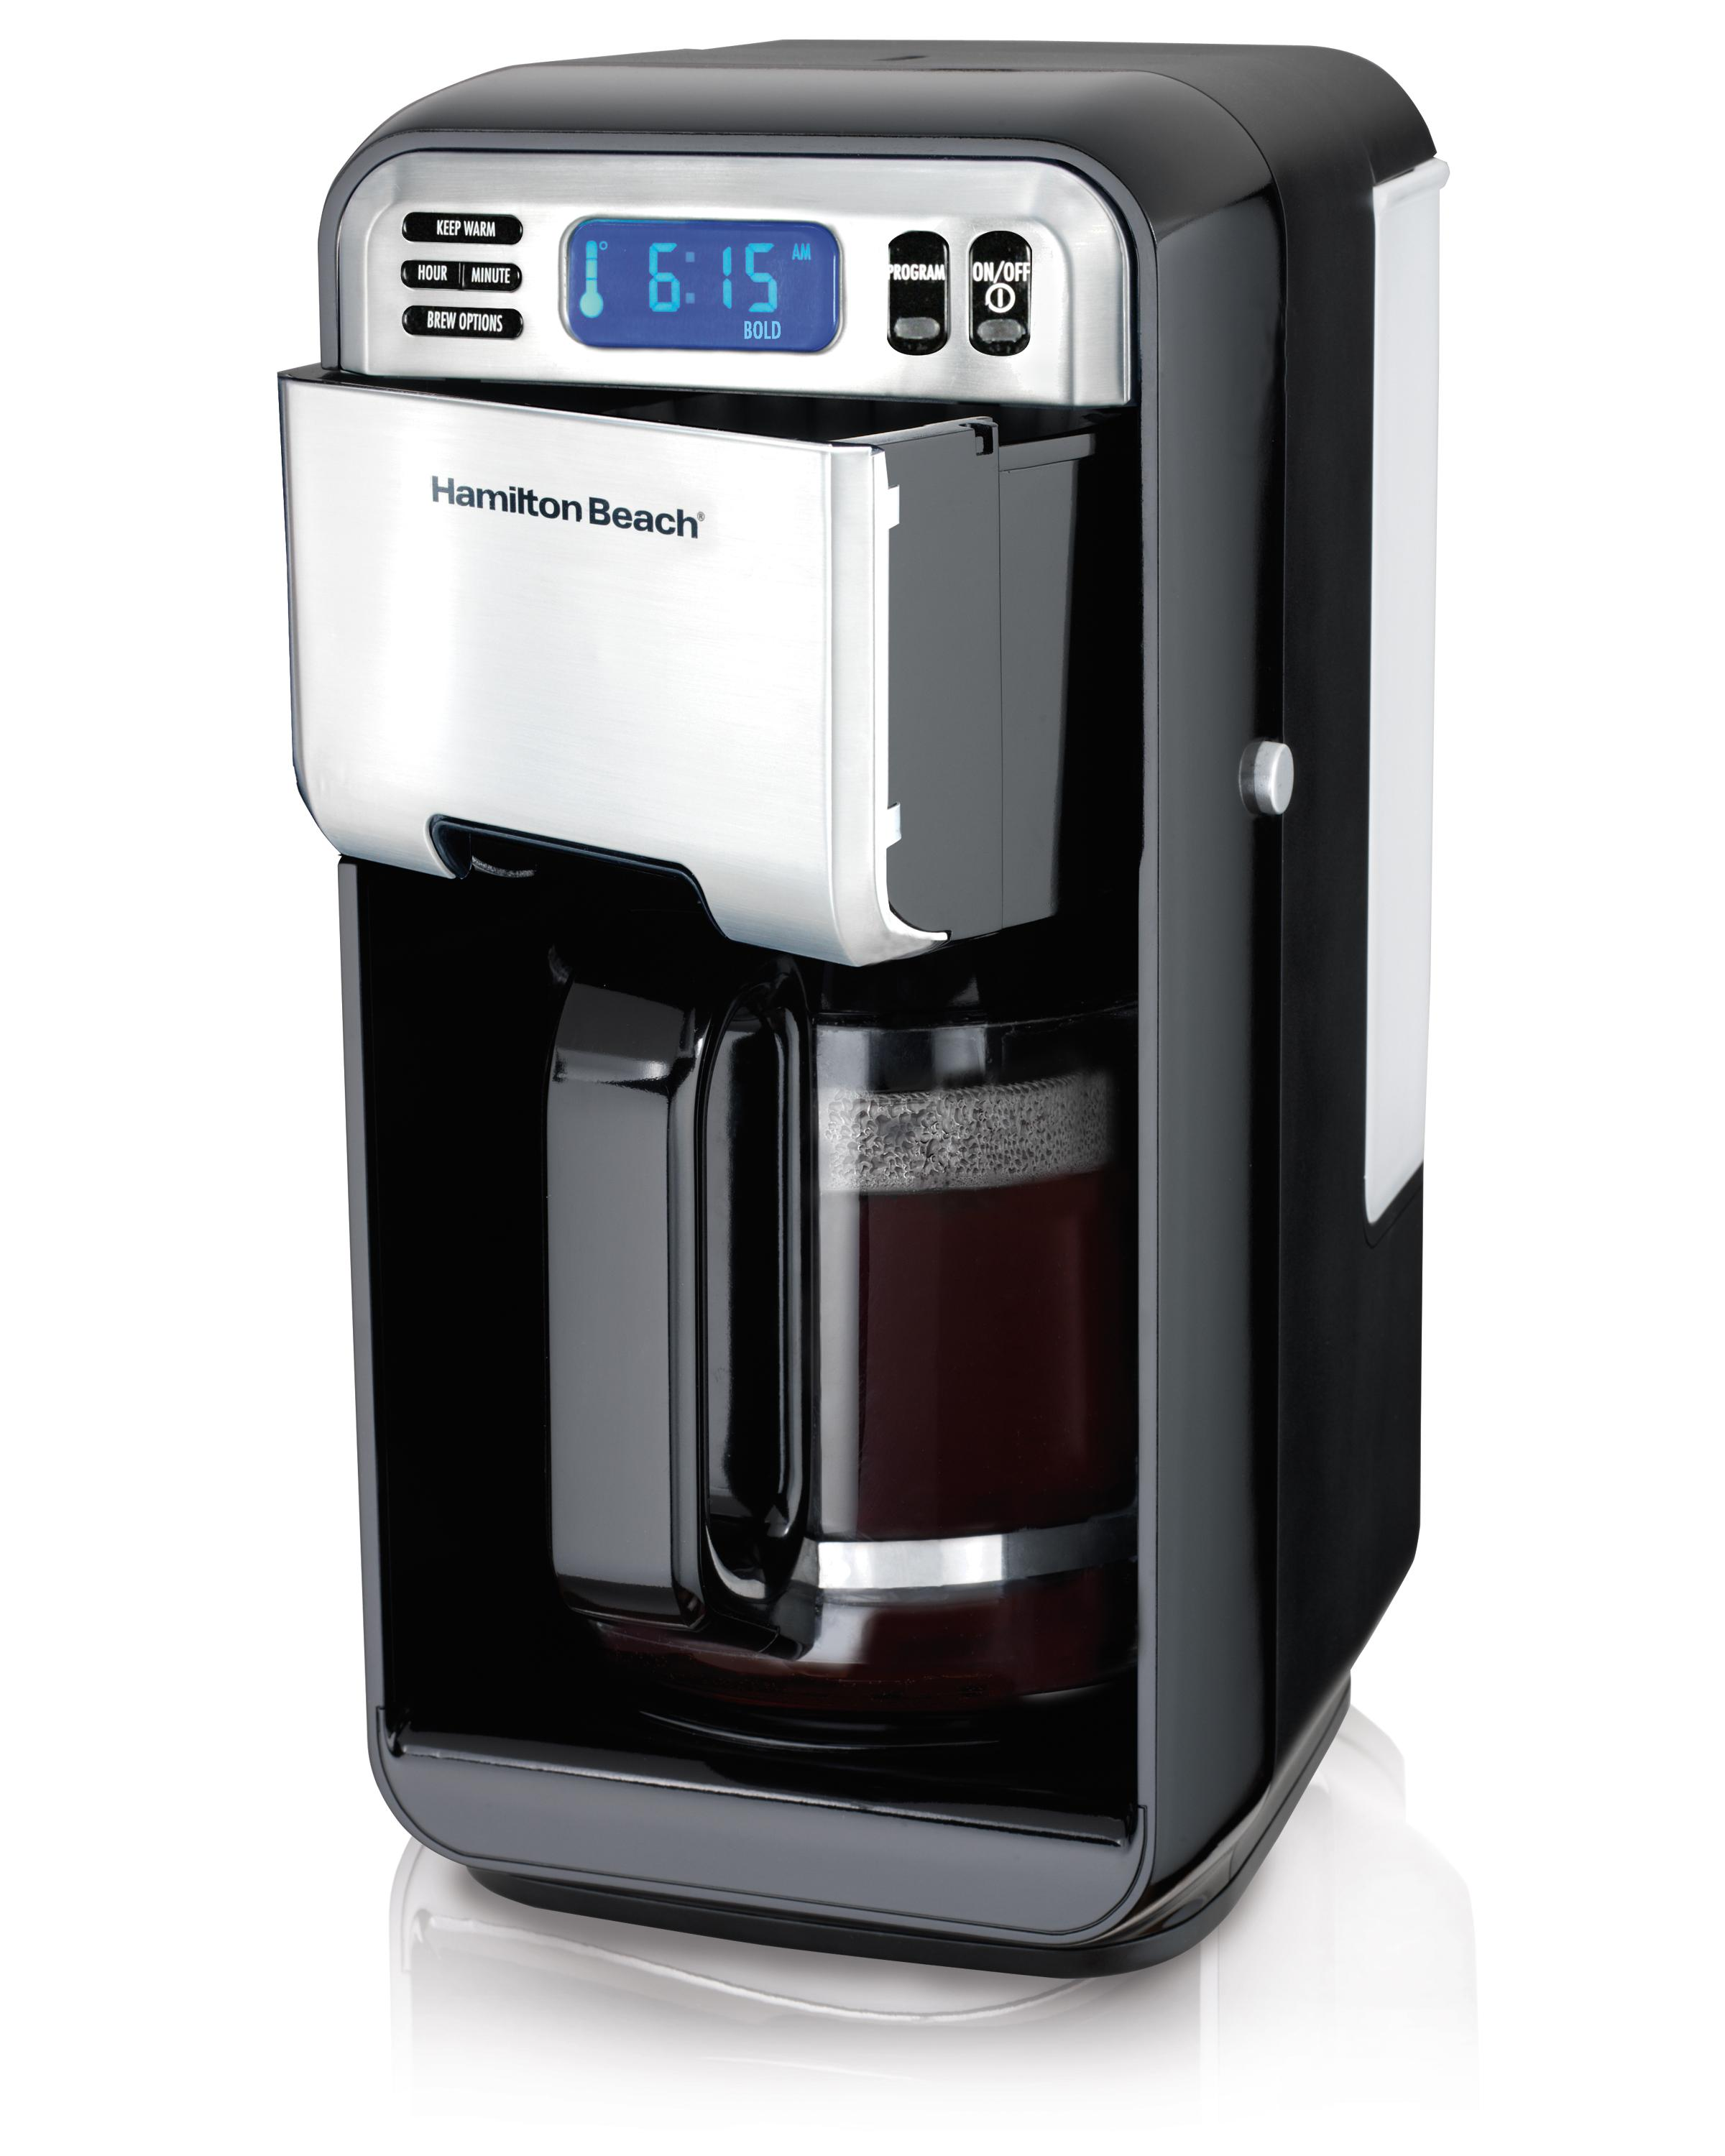 Hamilton Beach 46201 12 Cup Digital Coffeemaker, Stainless Steel: Amazon.ca: Home & Kitchen